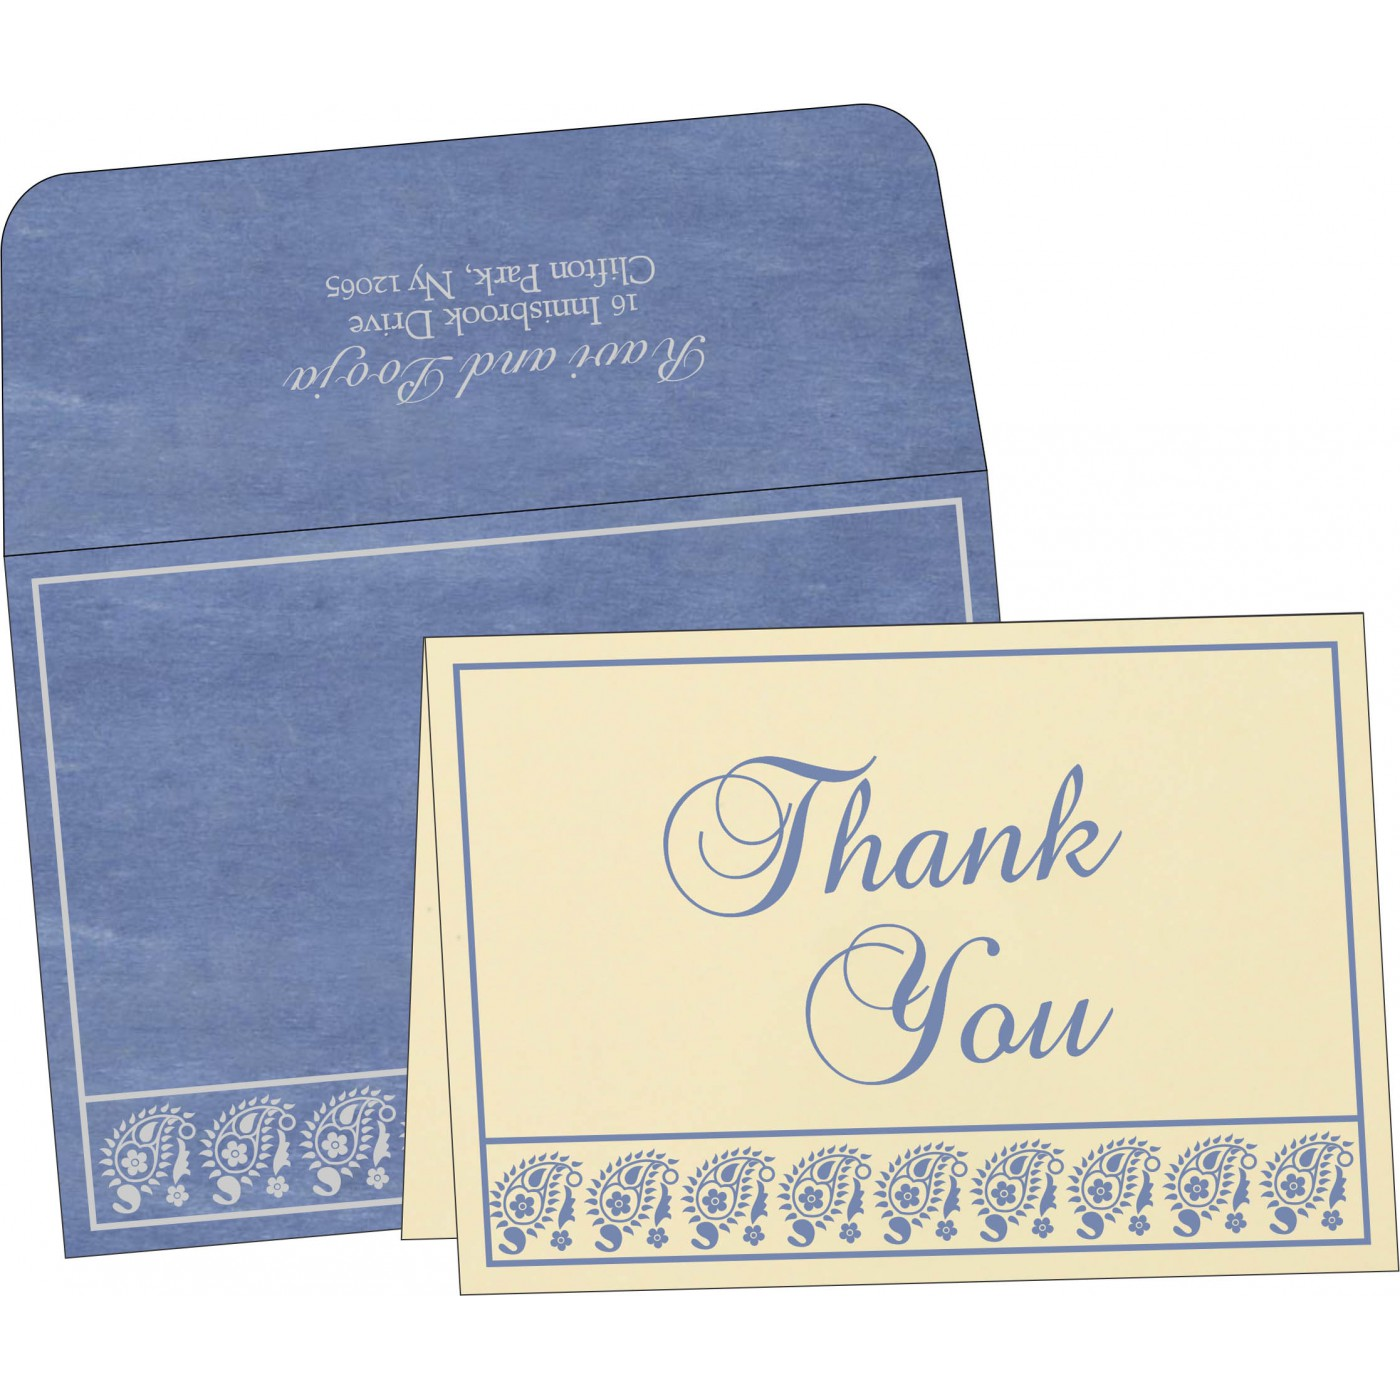 Thank You Cards - TYC-8218K